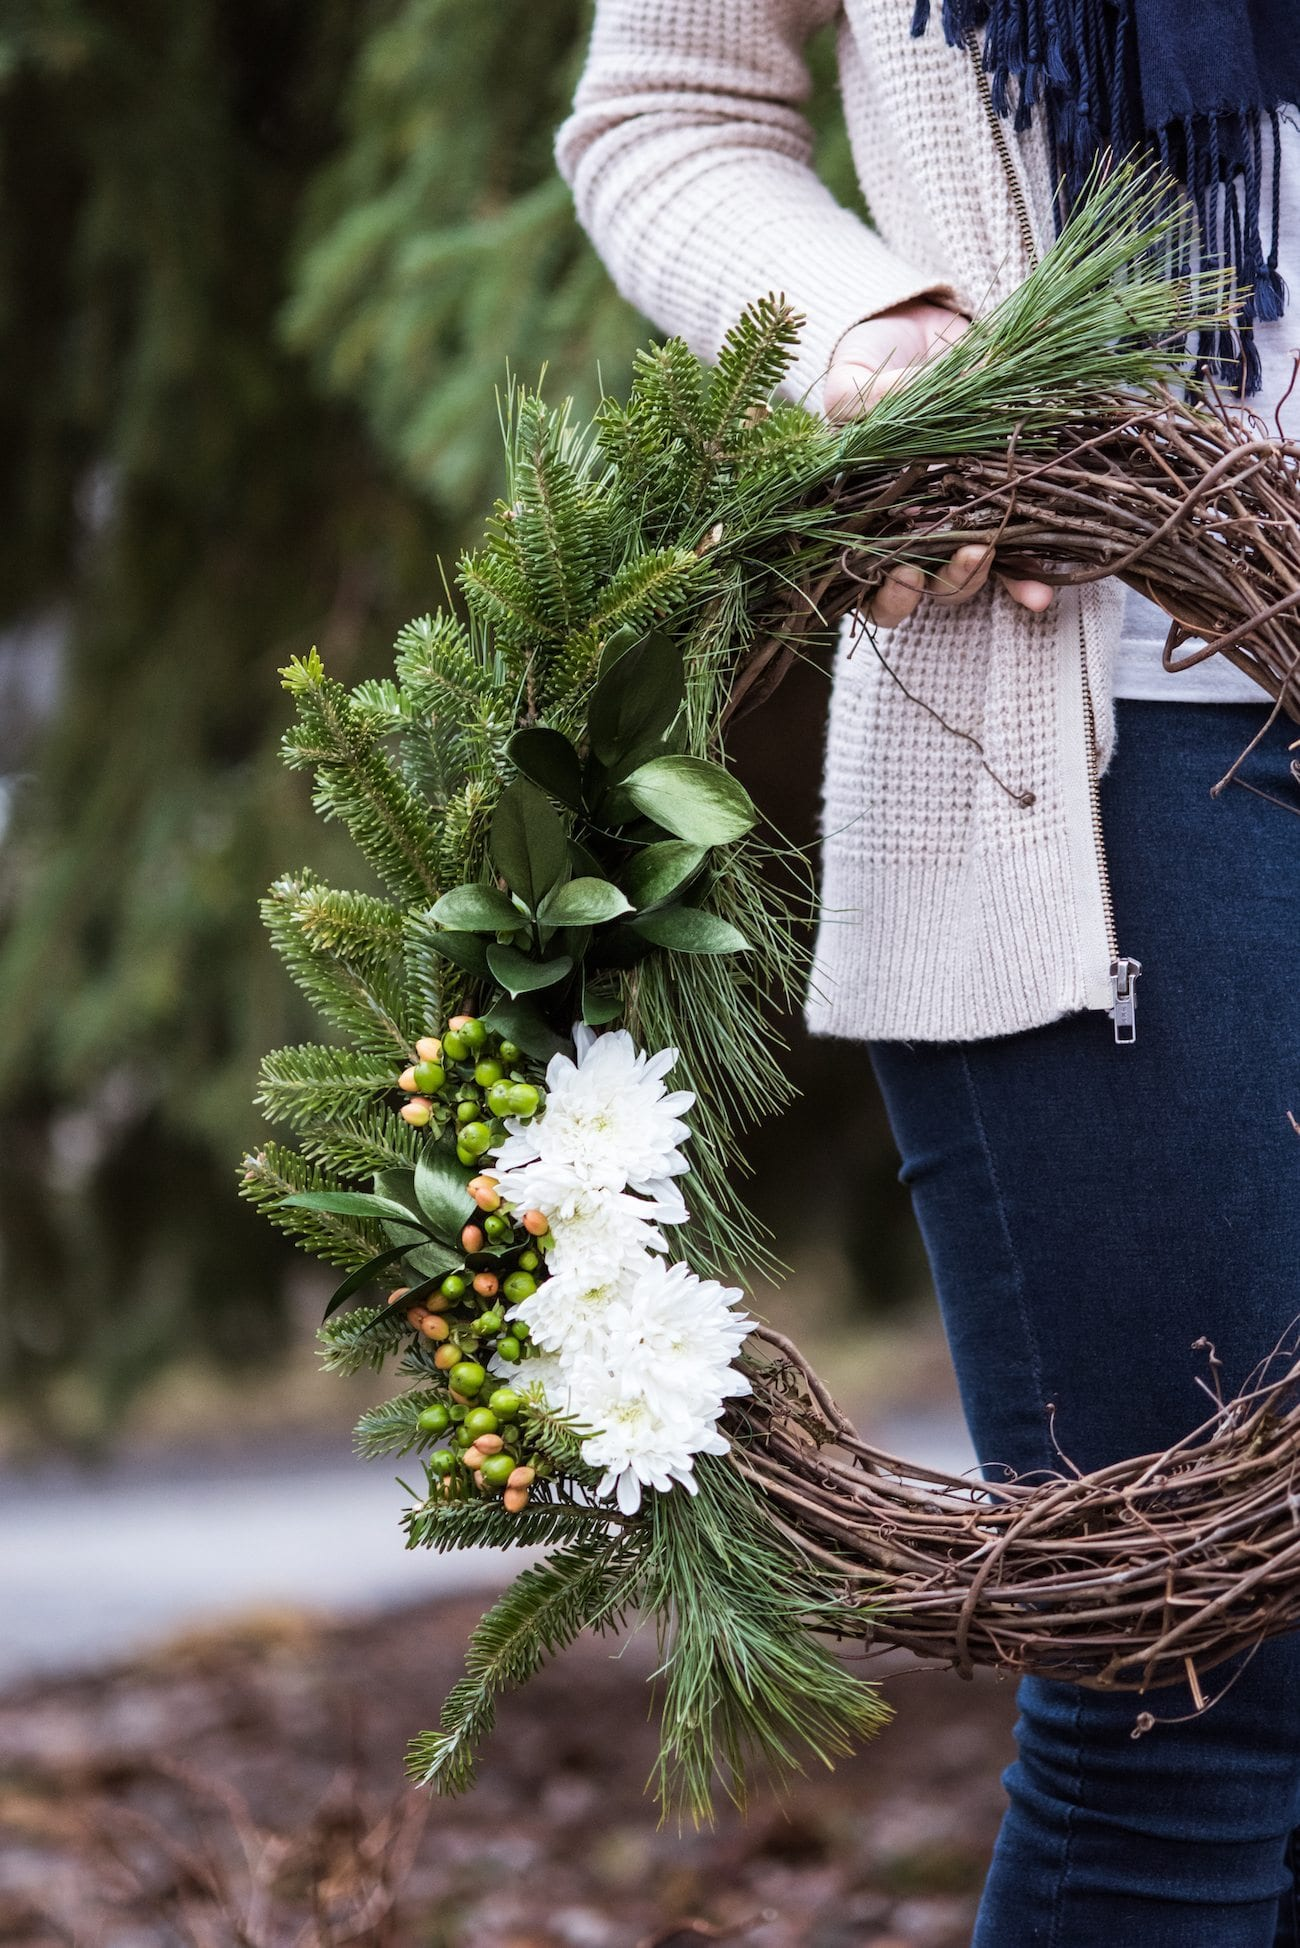 DIY Natural Winter Wreath | Homemade Christmas decor, entertaining tips, party ideas and winter decorating ideas from @cydconverse